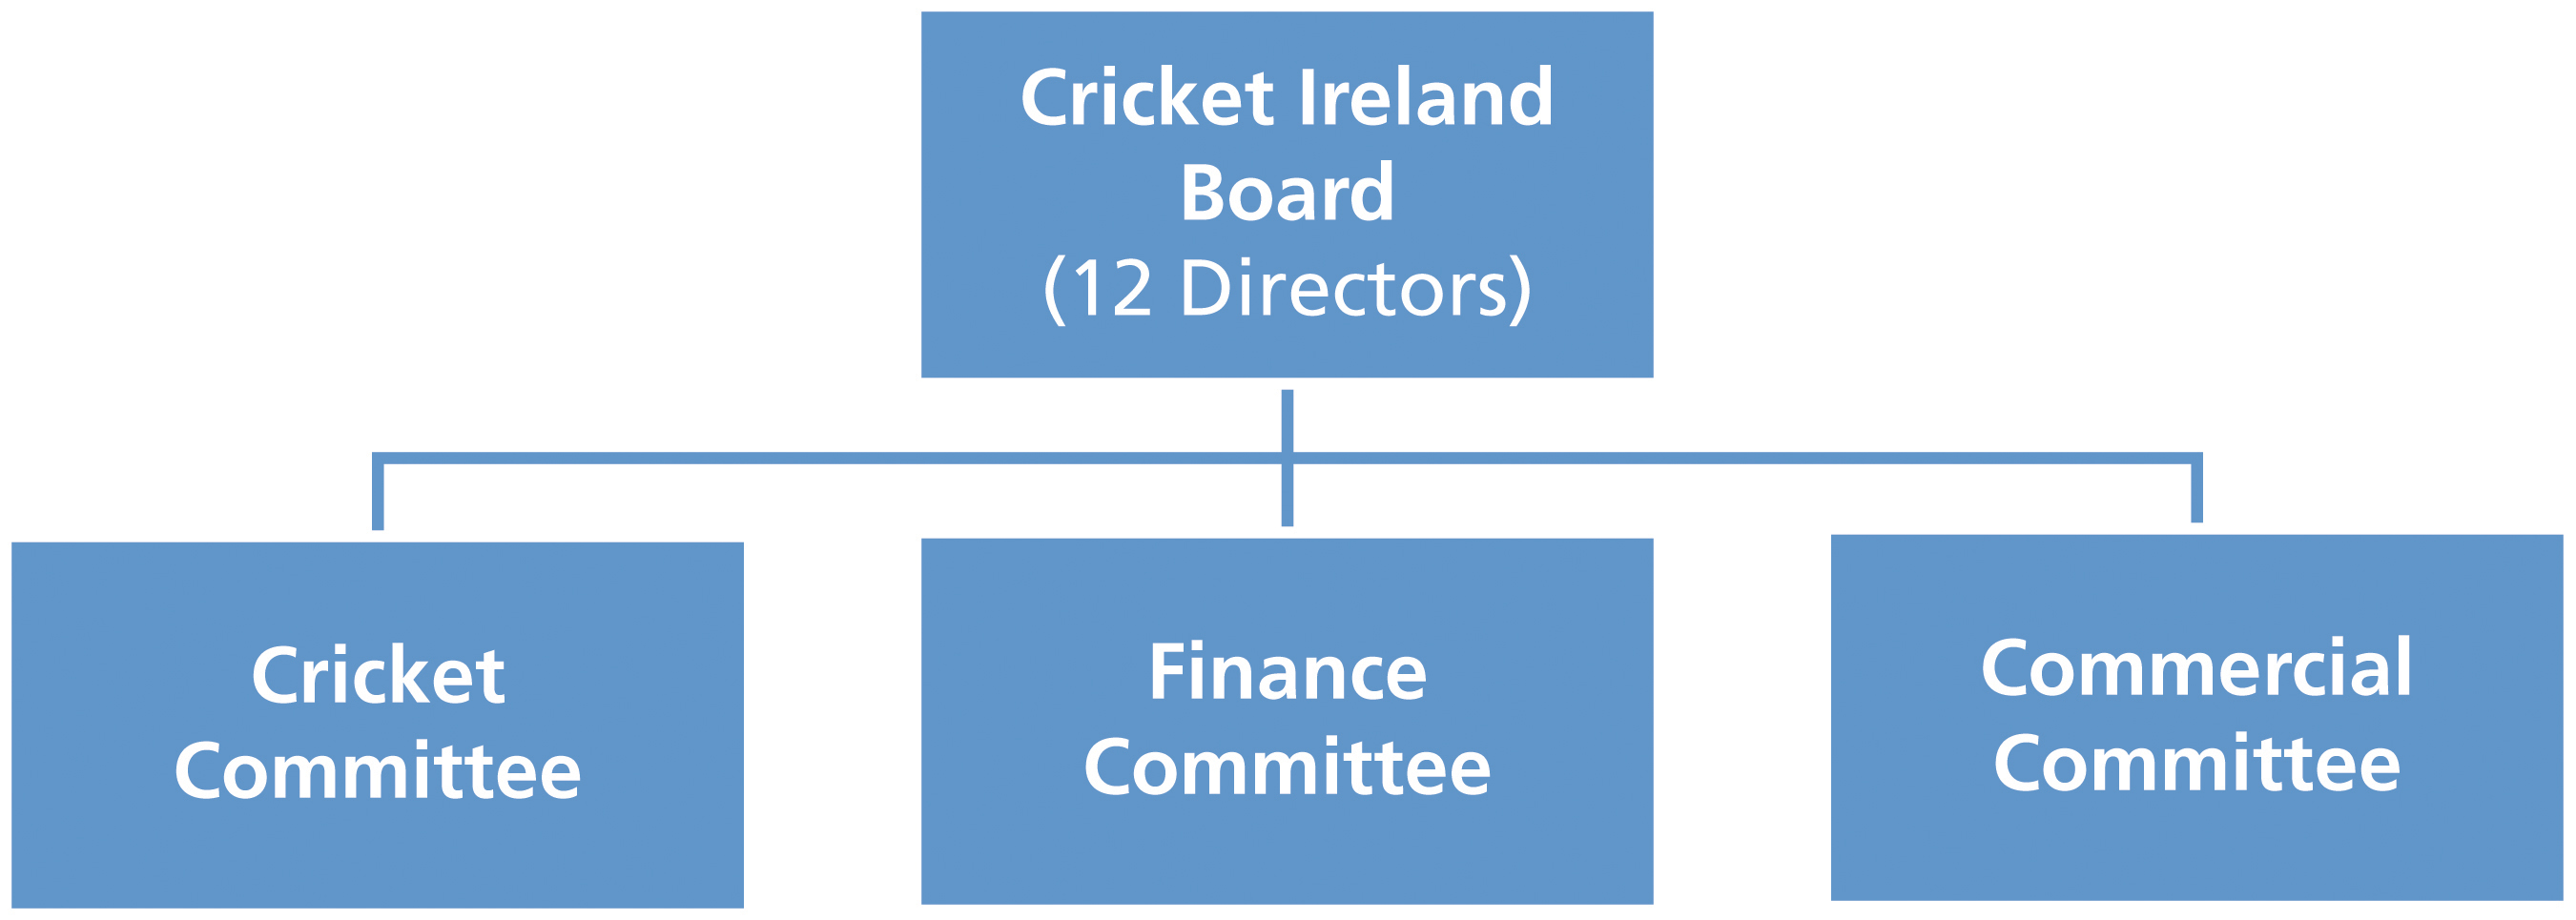 Board Structure of Cricket Ireland